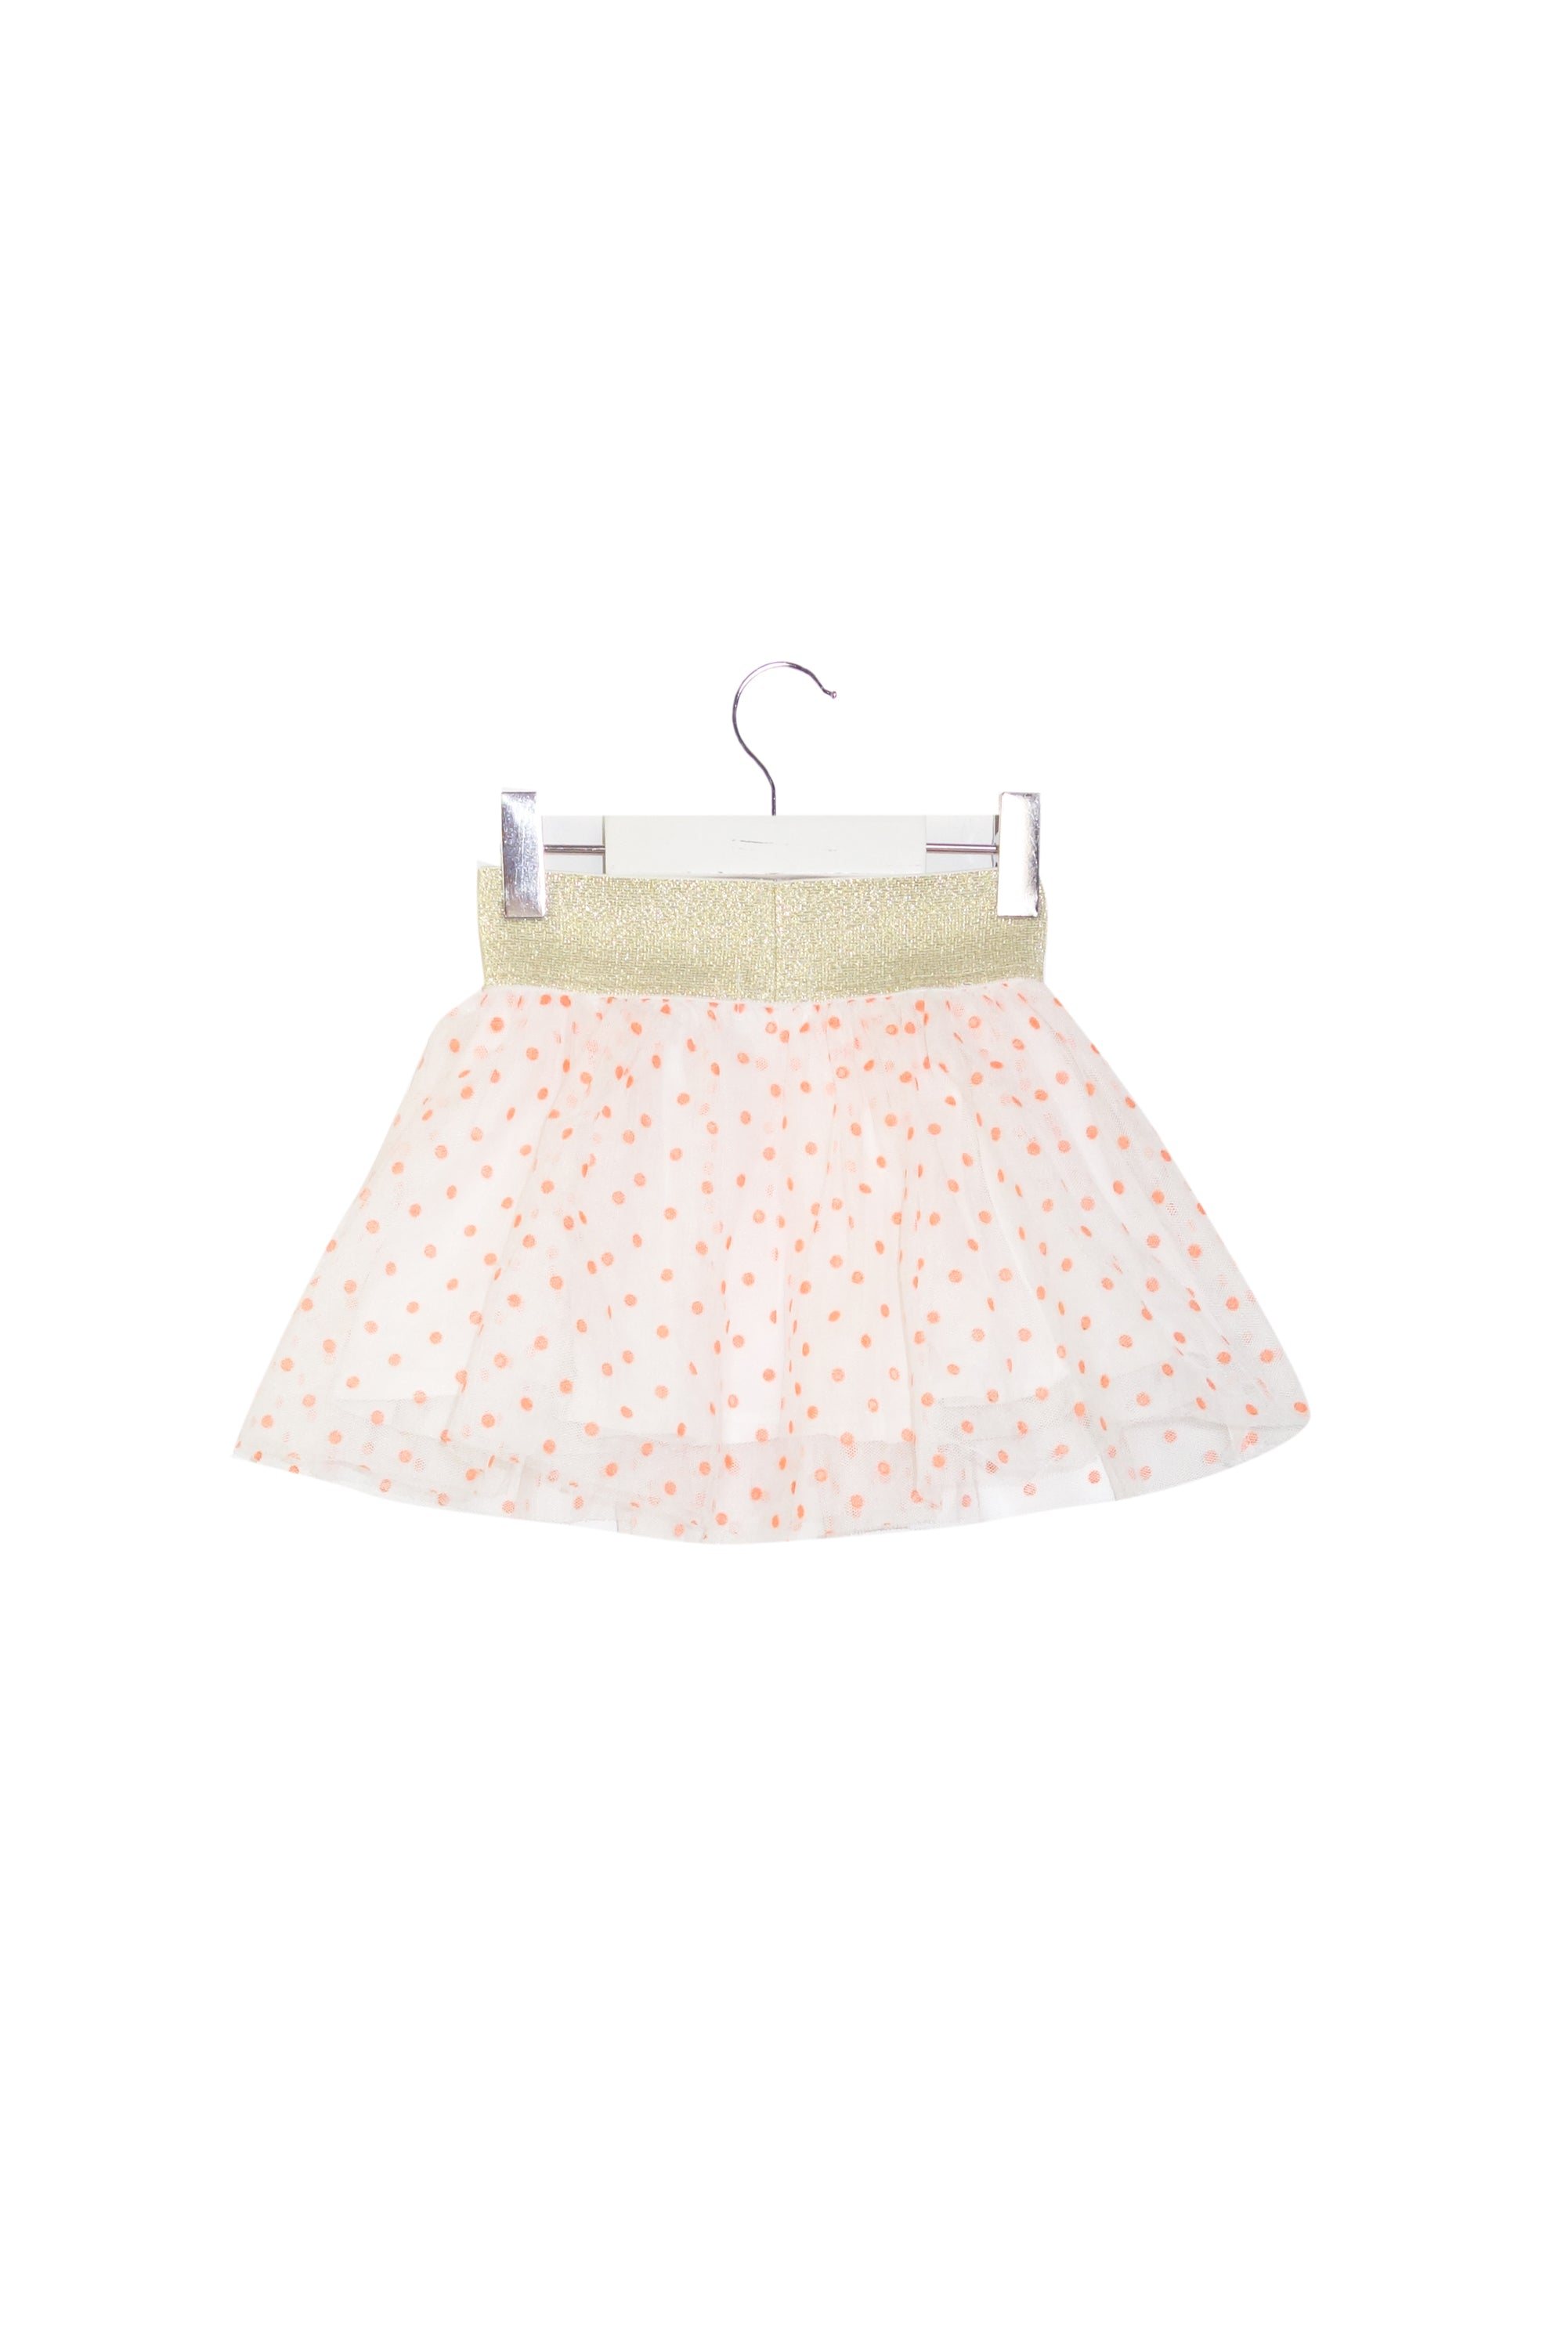 10013409 Seed Kids ~ Skirt 3-4T at Retykle